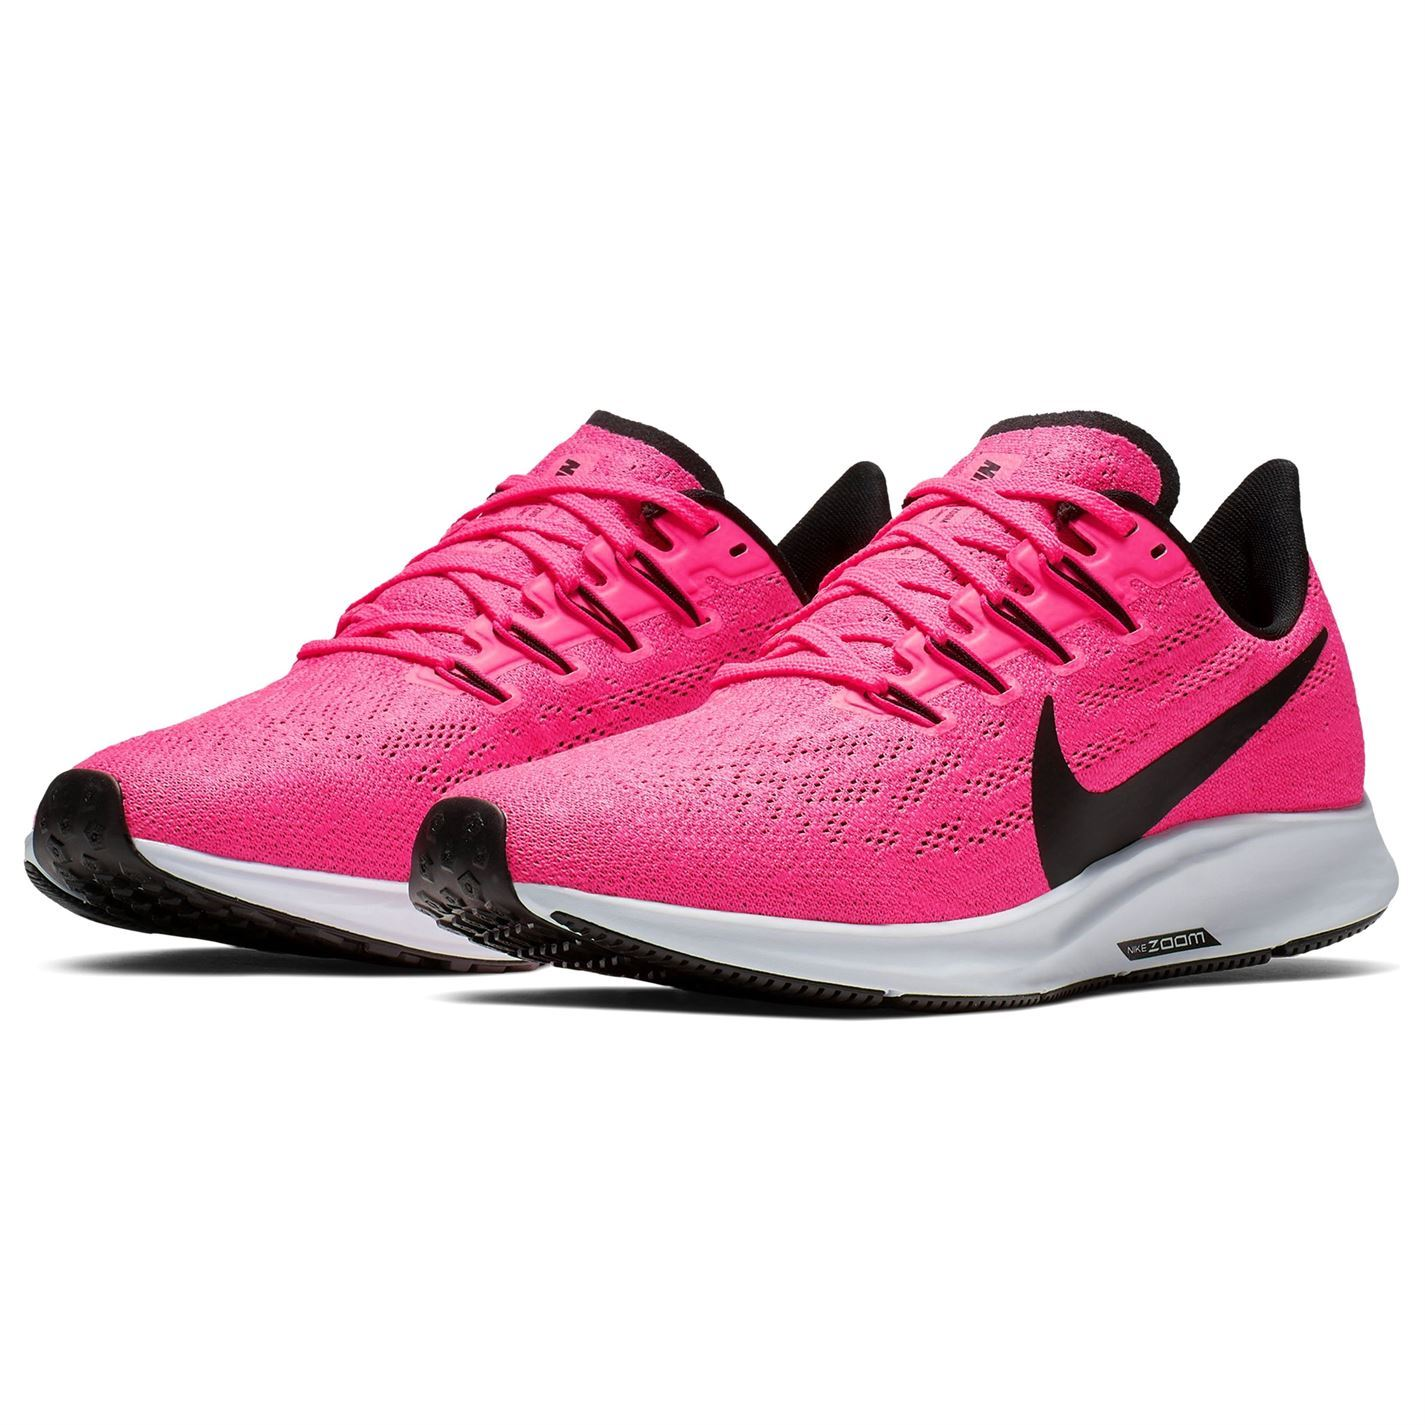 promo code 2a598 857bf Details about Nike Air Zoom Pegasus 36 Womens Running Shoes Trainers  Pink/Black Athleisure